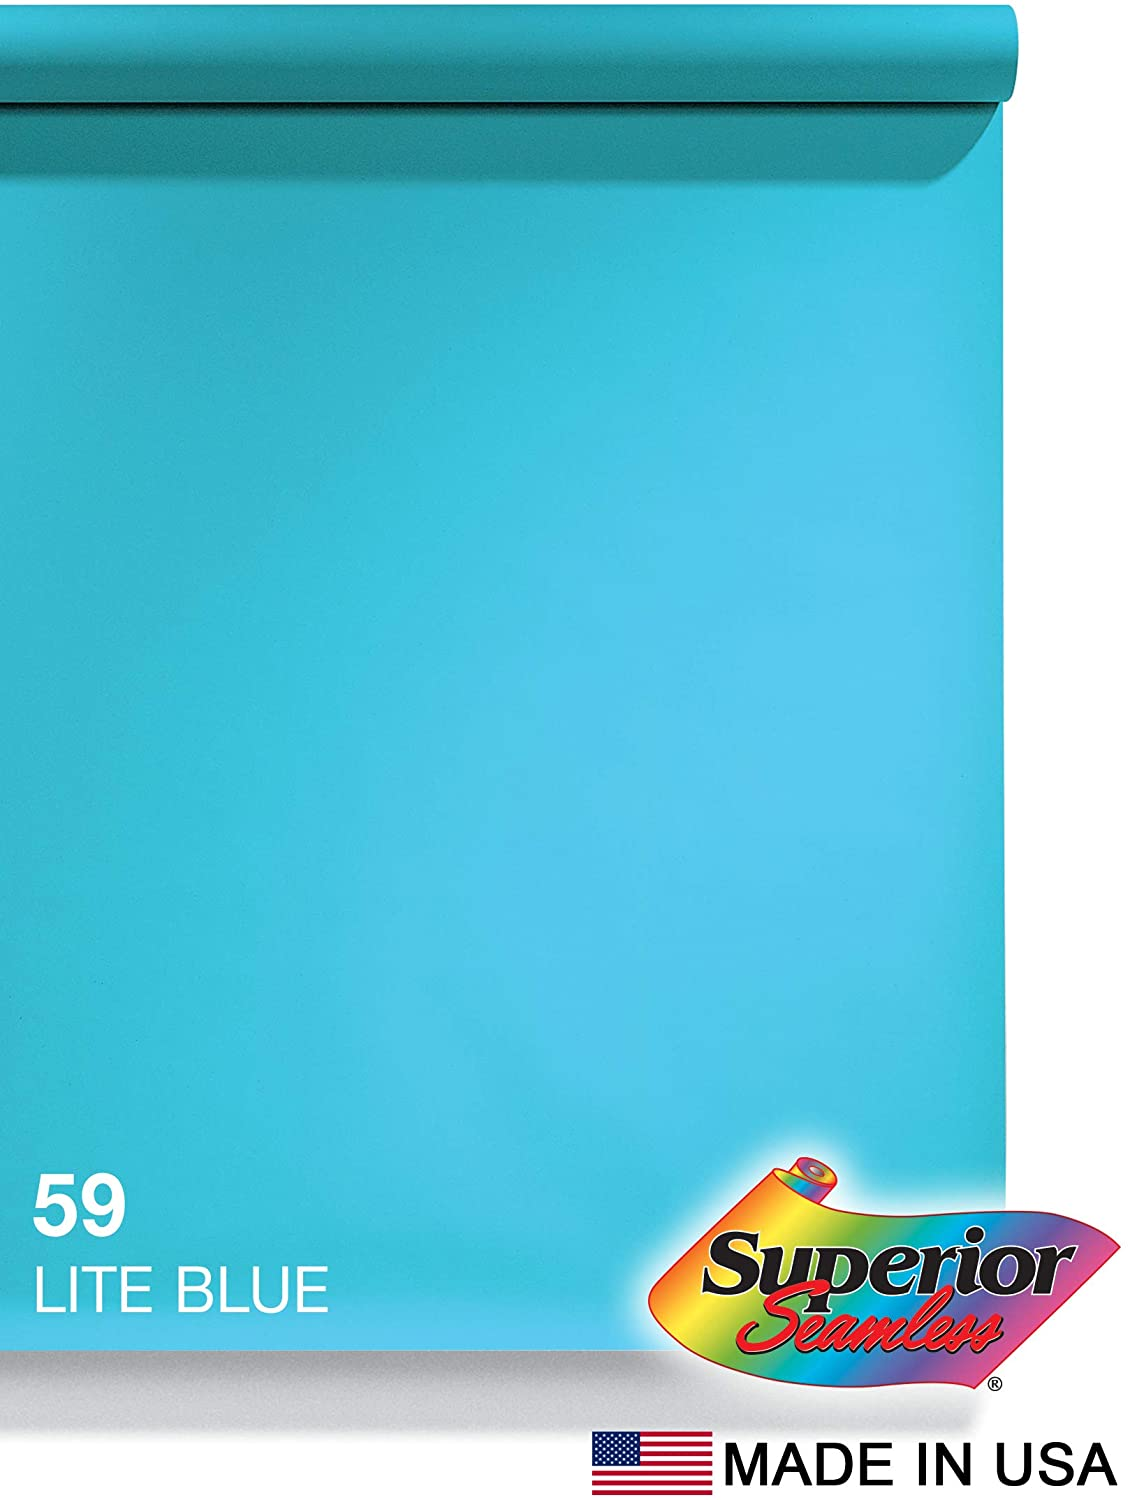 Superior Seamless Photography Background Paper, 59 Lite Blue (86 inches Wide x 36 feet Long)